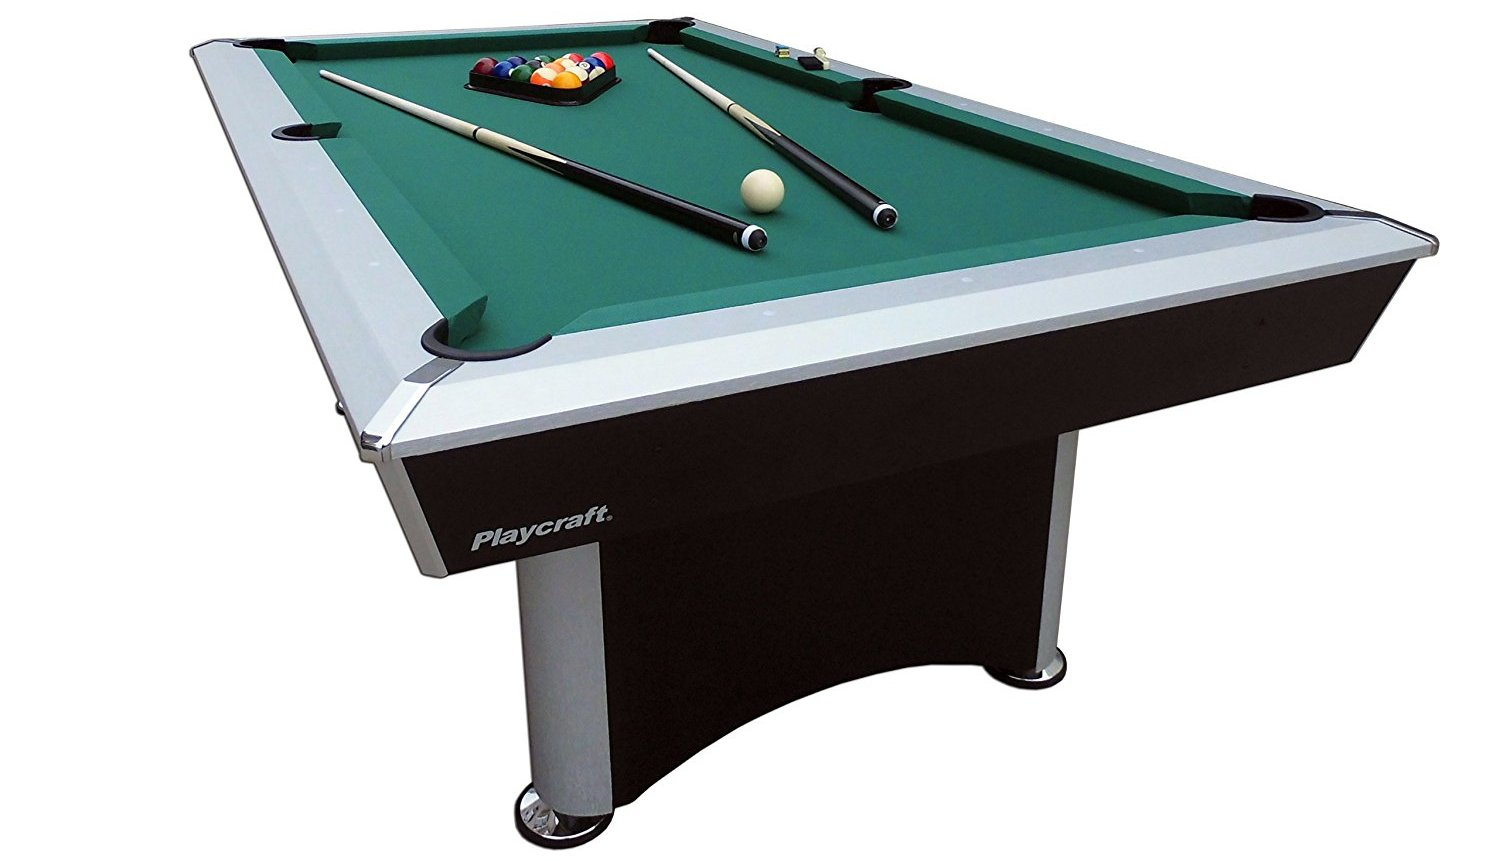 Top Best Pool Ping Pong Table Combo Reviews For Game Room - Best pool table ping pong combo